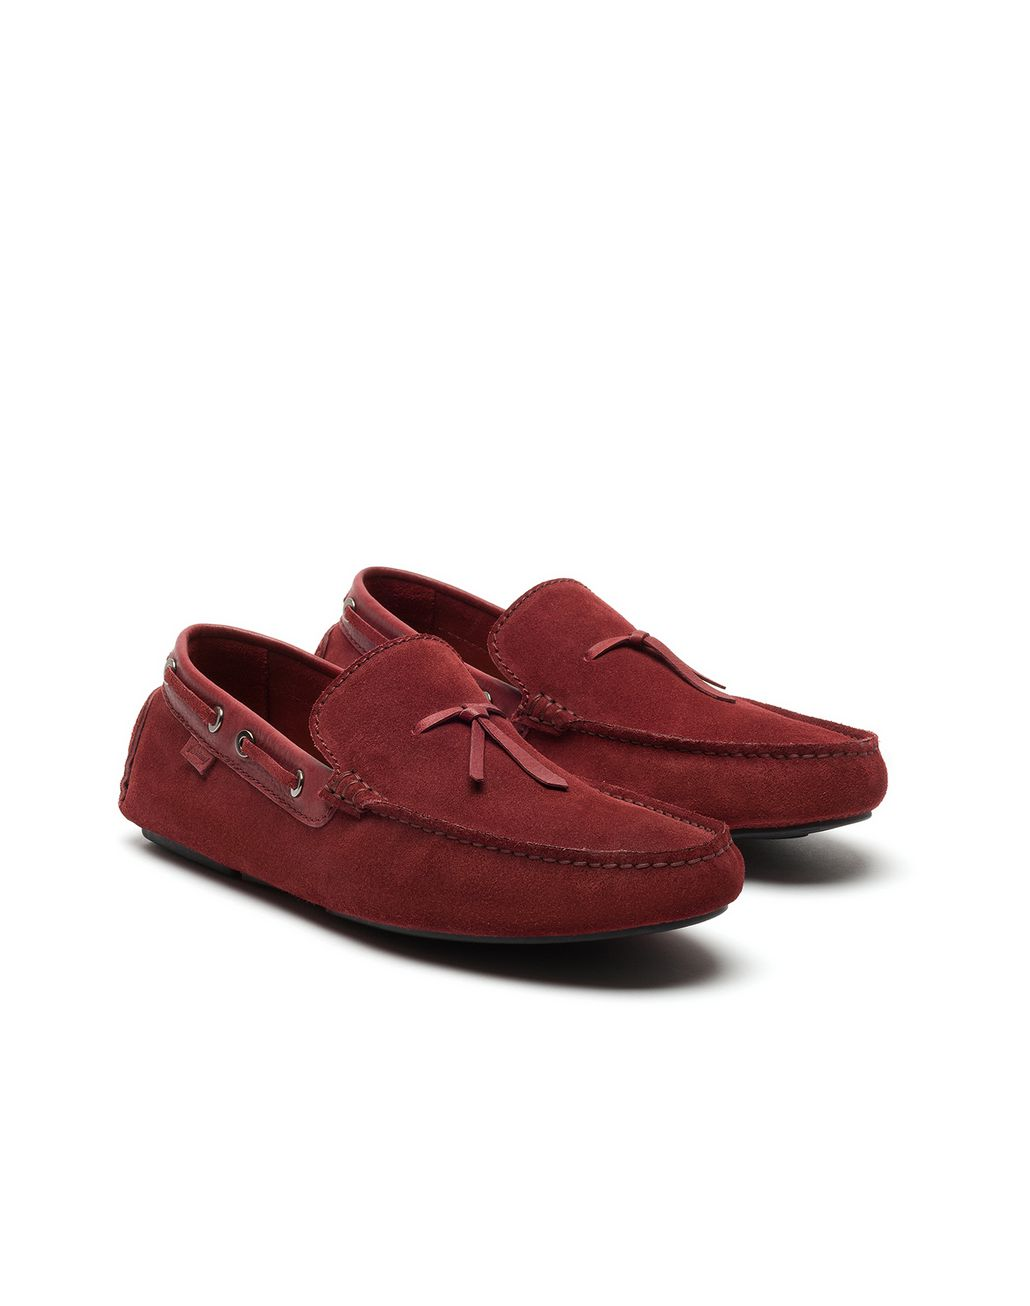 BRIONI Bordeaux Unlined Calf Suede Loafer Loafers Man d